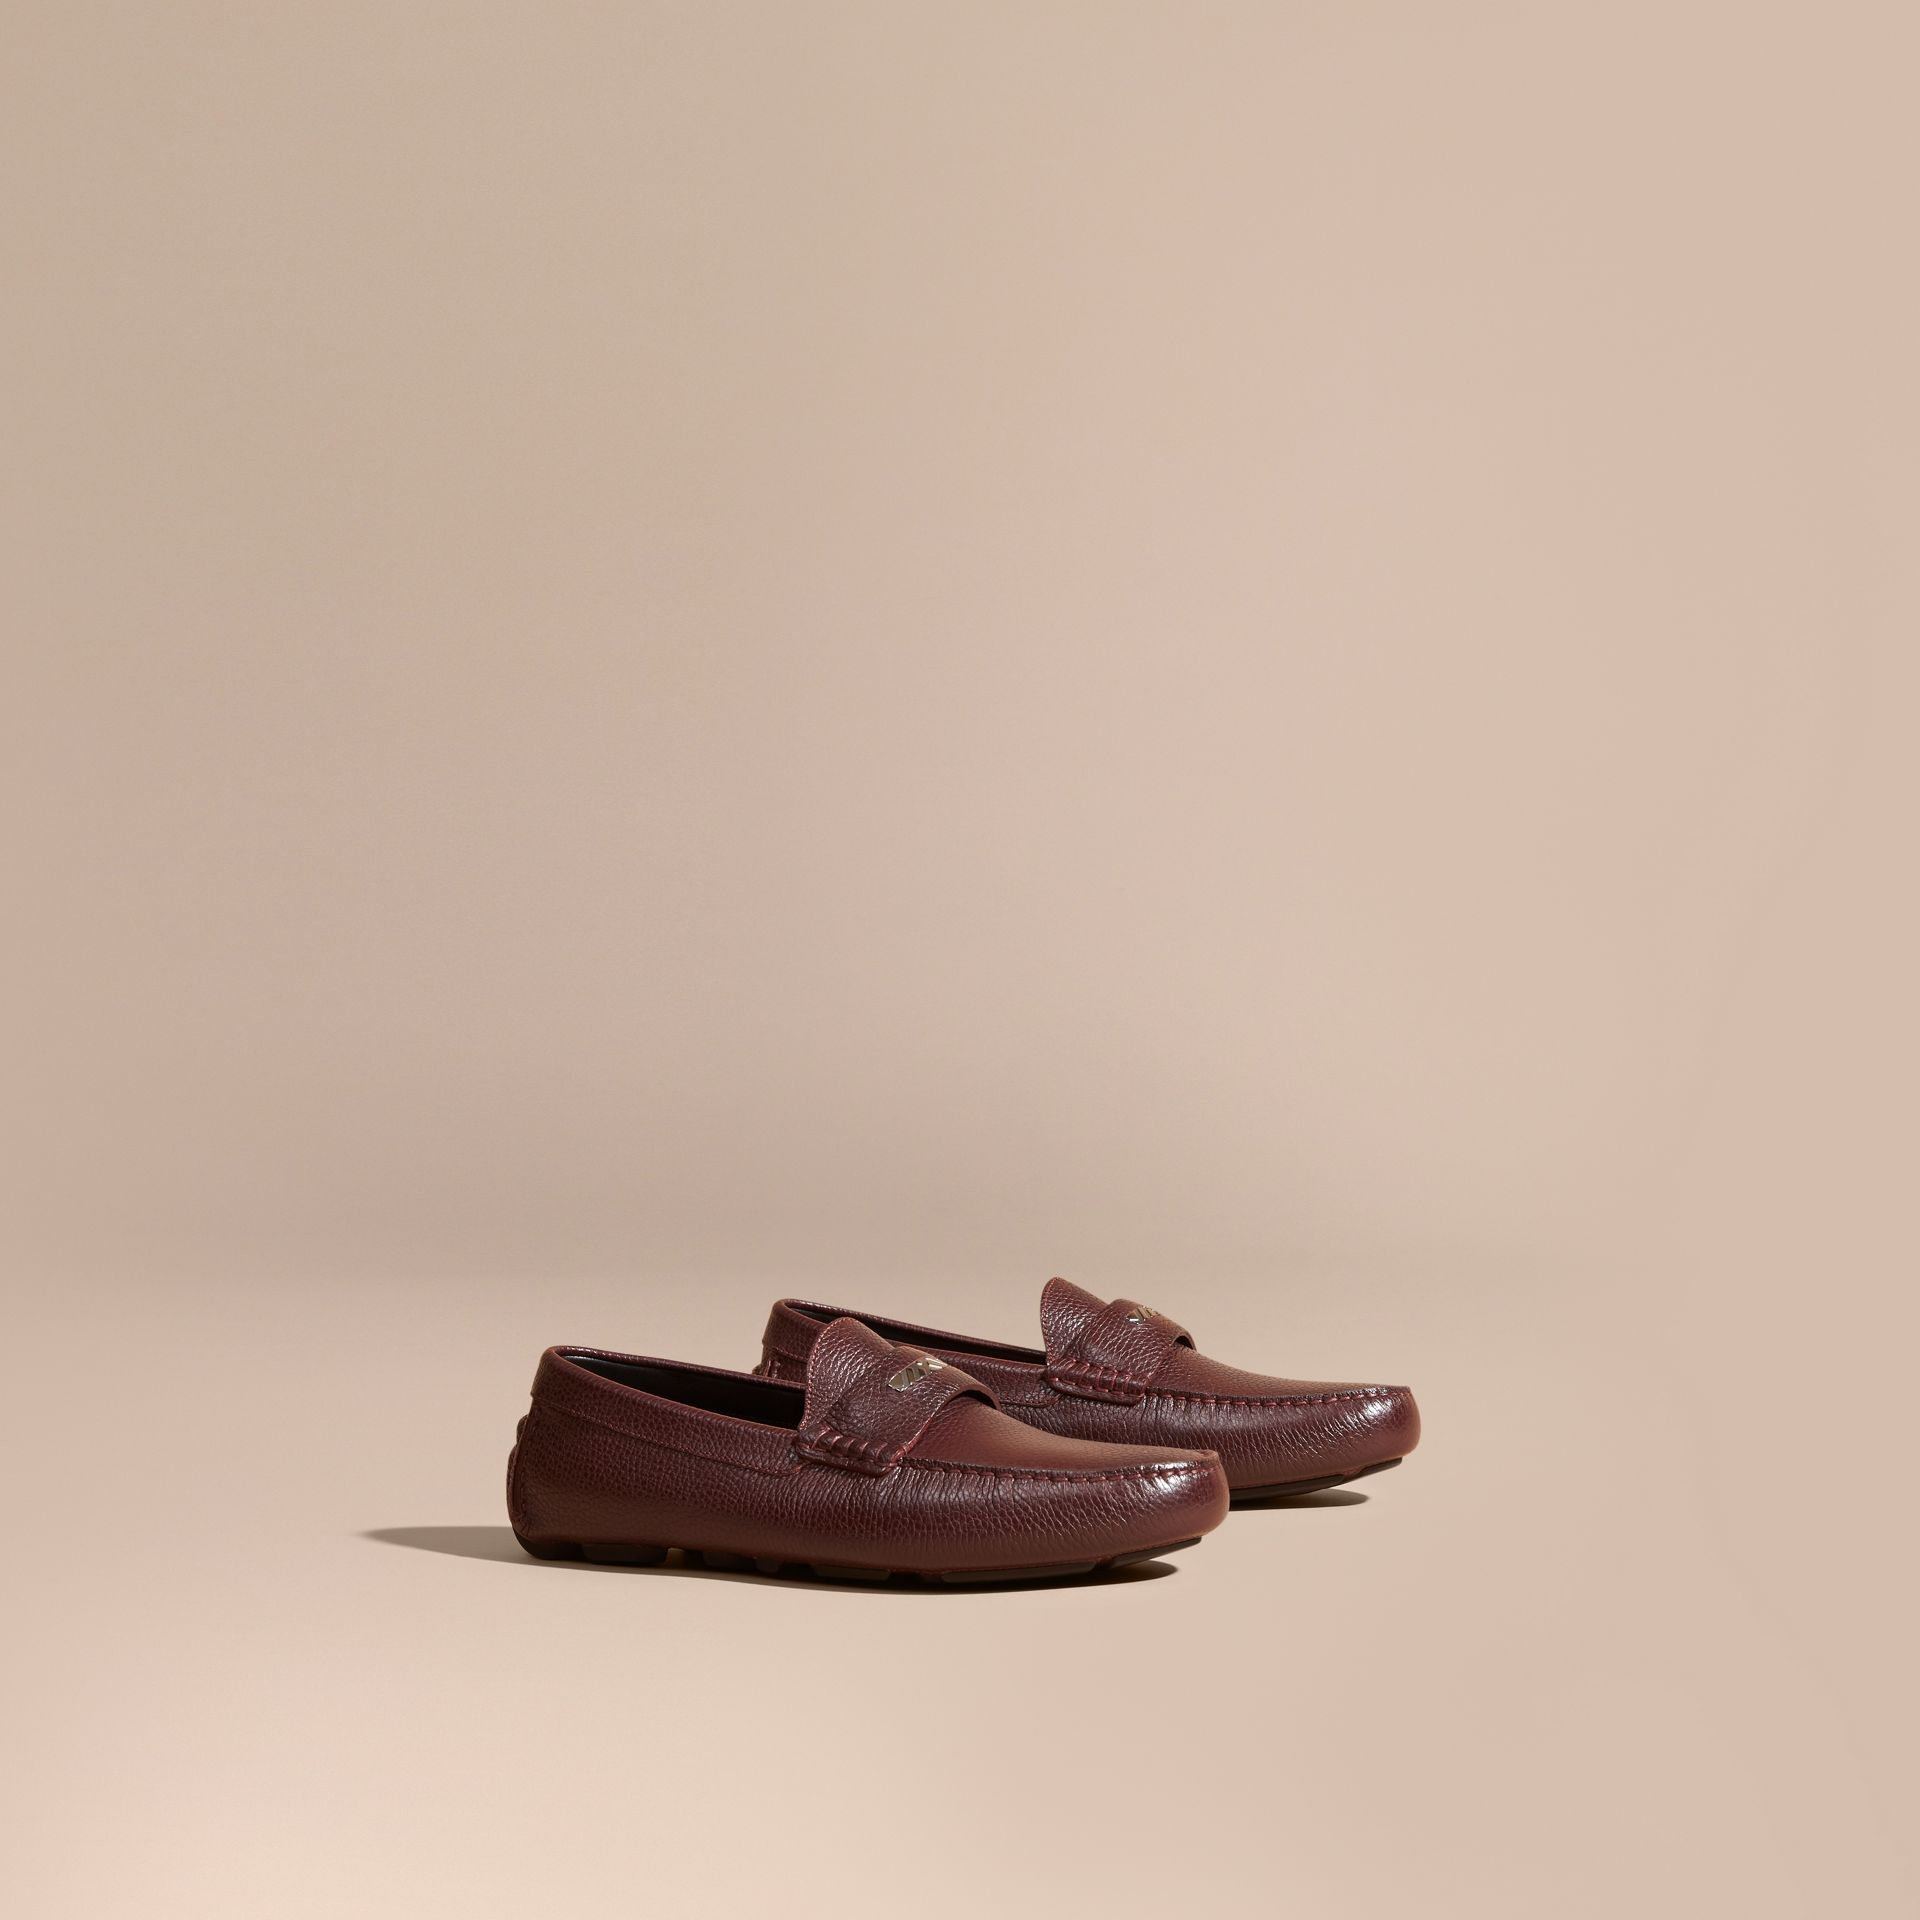 Bordeaux Grainy Leather Loafers with Engraved Check Detail Bordeaux - gallery image 1